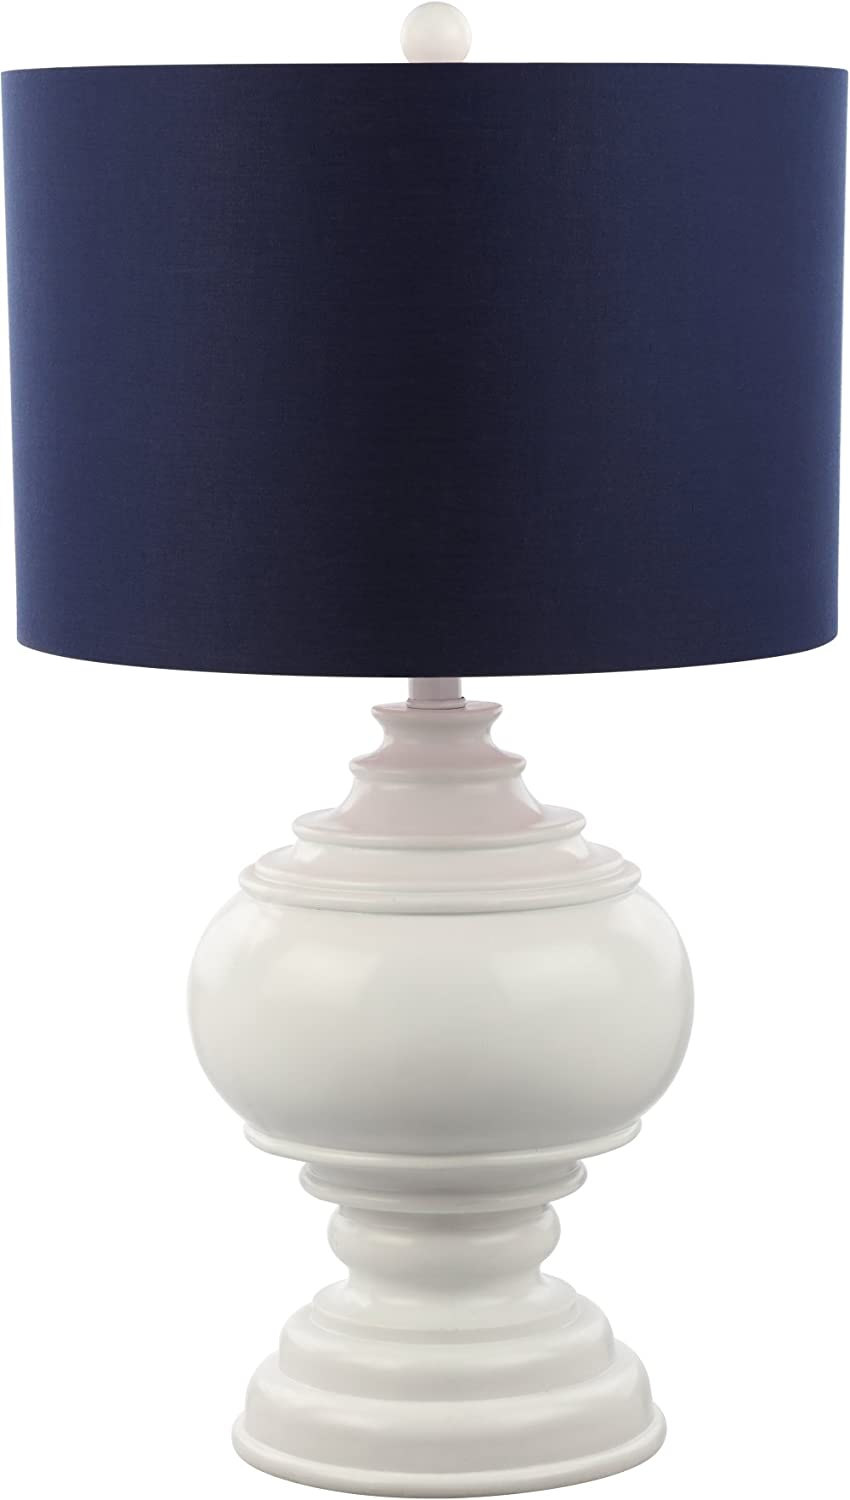 "Decorator's Lighting 15544E Luxury 26"" Burmese White Table Lamp with Navy Shade, Blue"